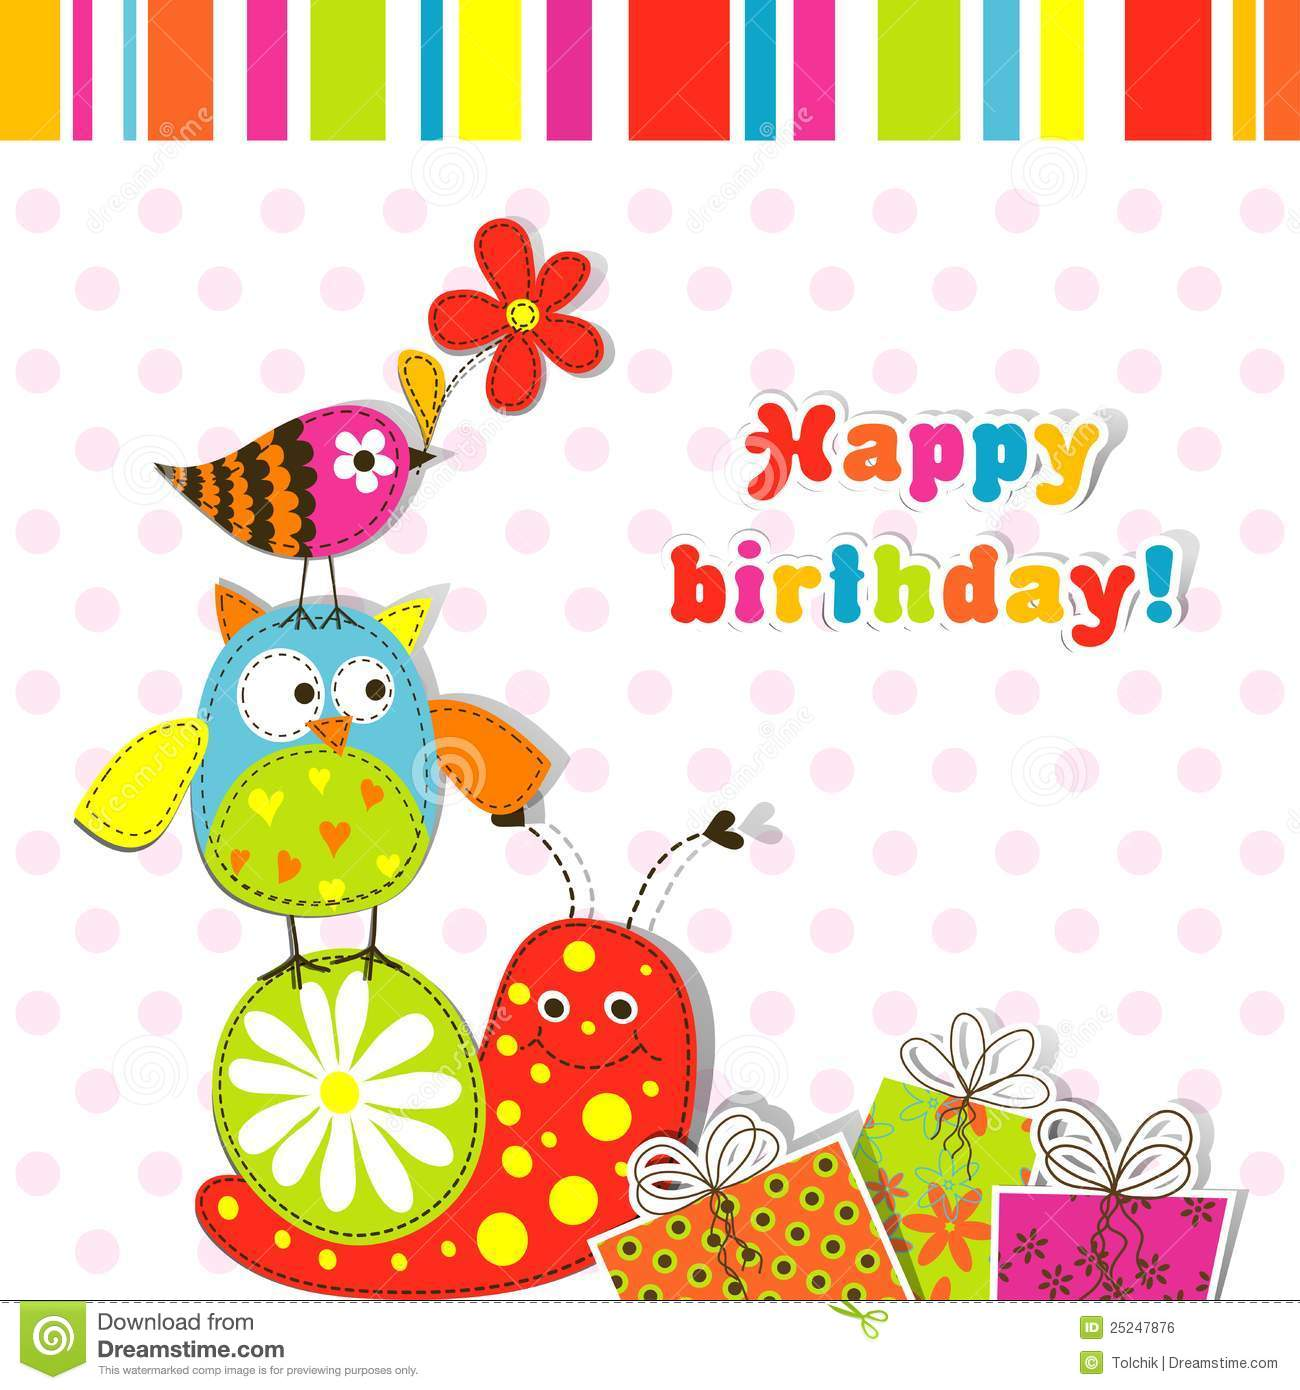 bday card designs ; Free-Birthday-Card-Templates-to-inspire-you-on-how-to-create-your-own-Birthday-card-1